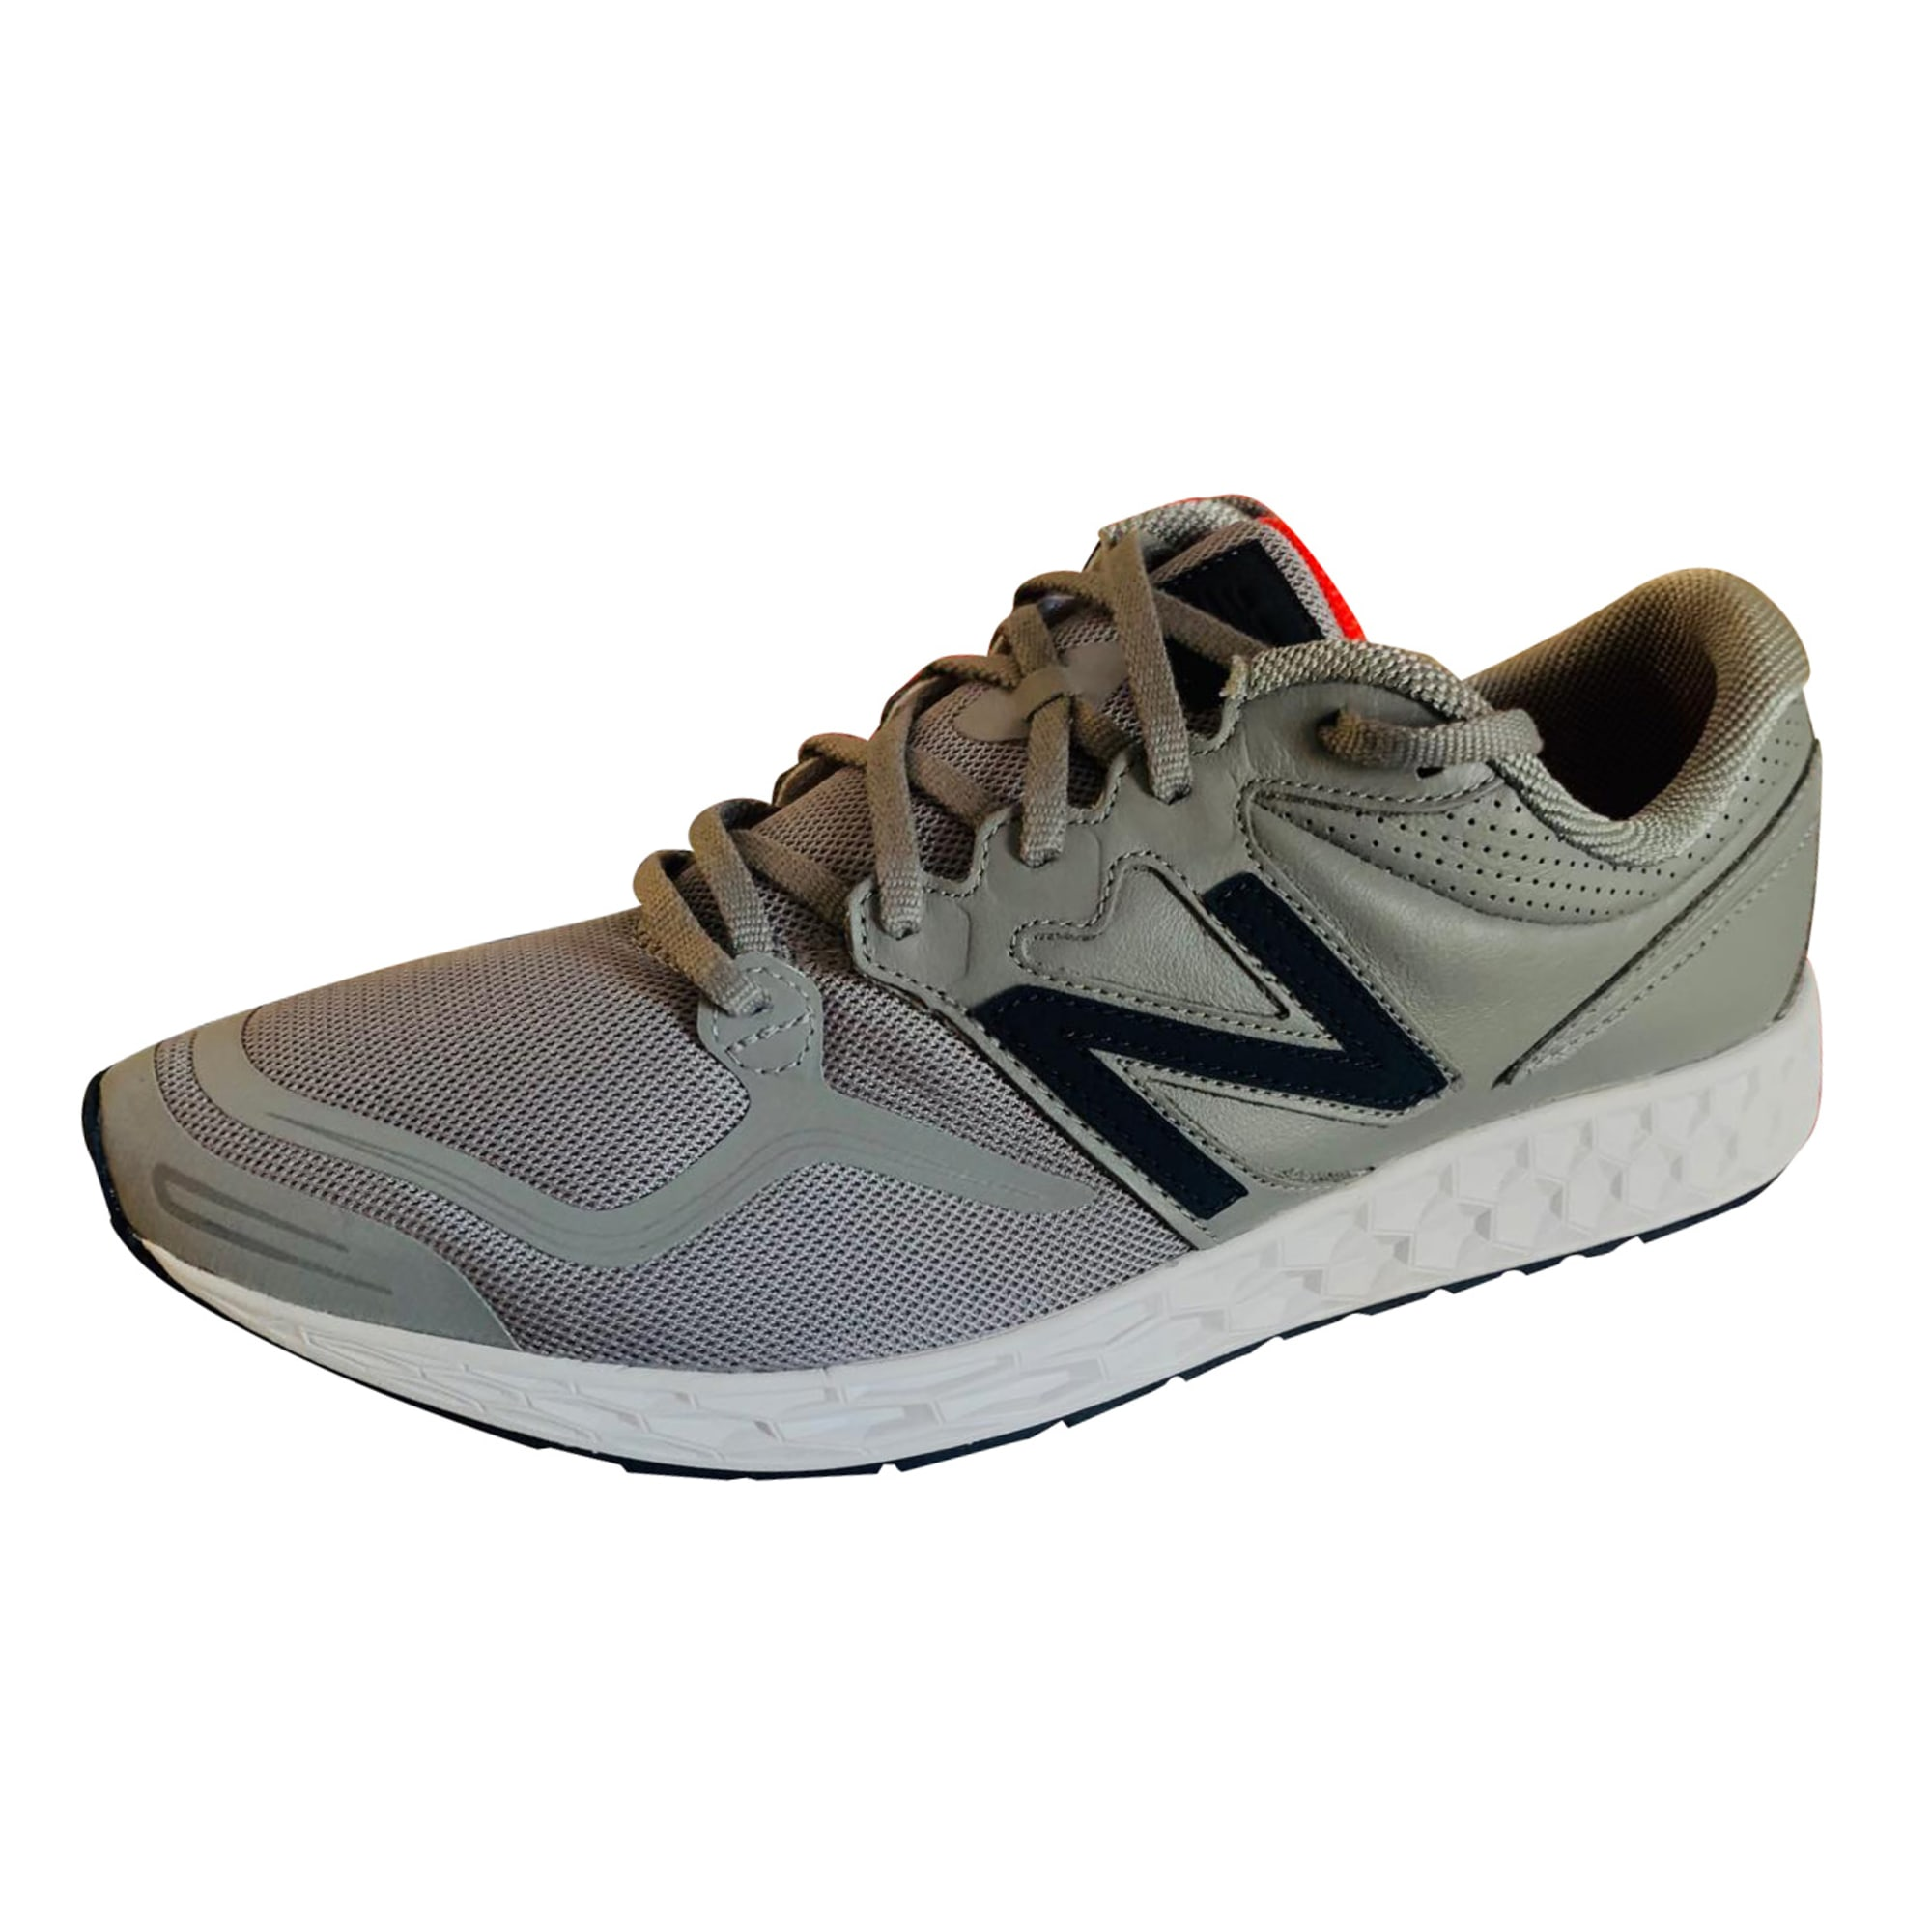 Baskets NEW BALANCE Gris, anthracite